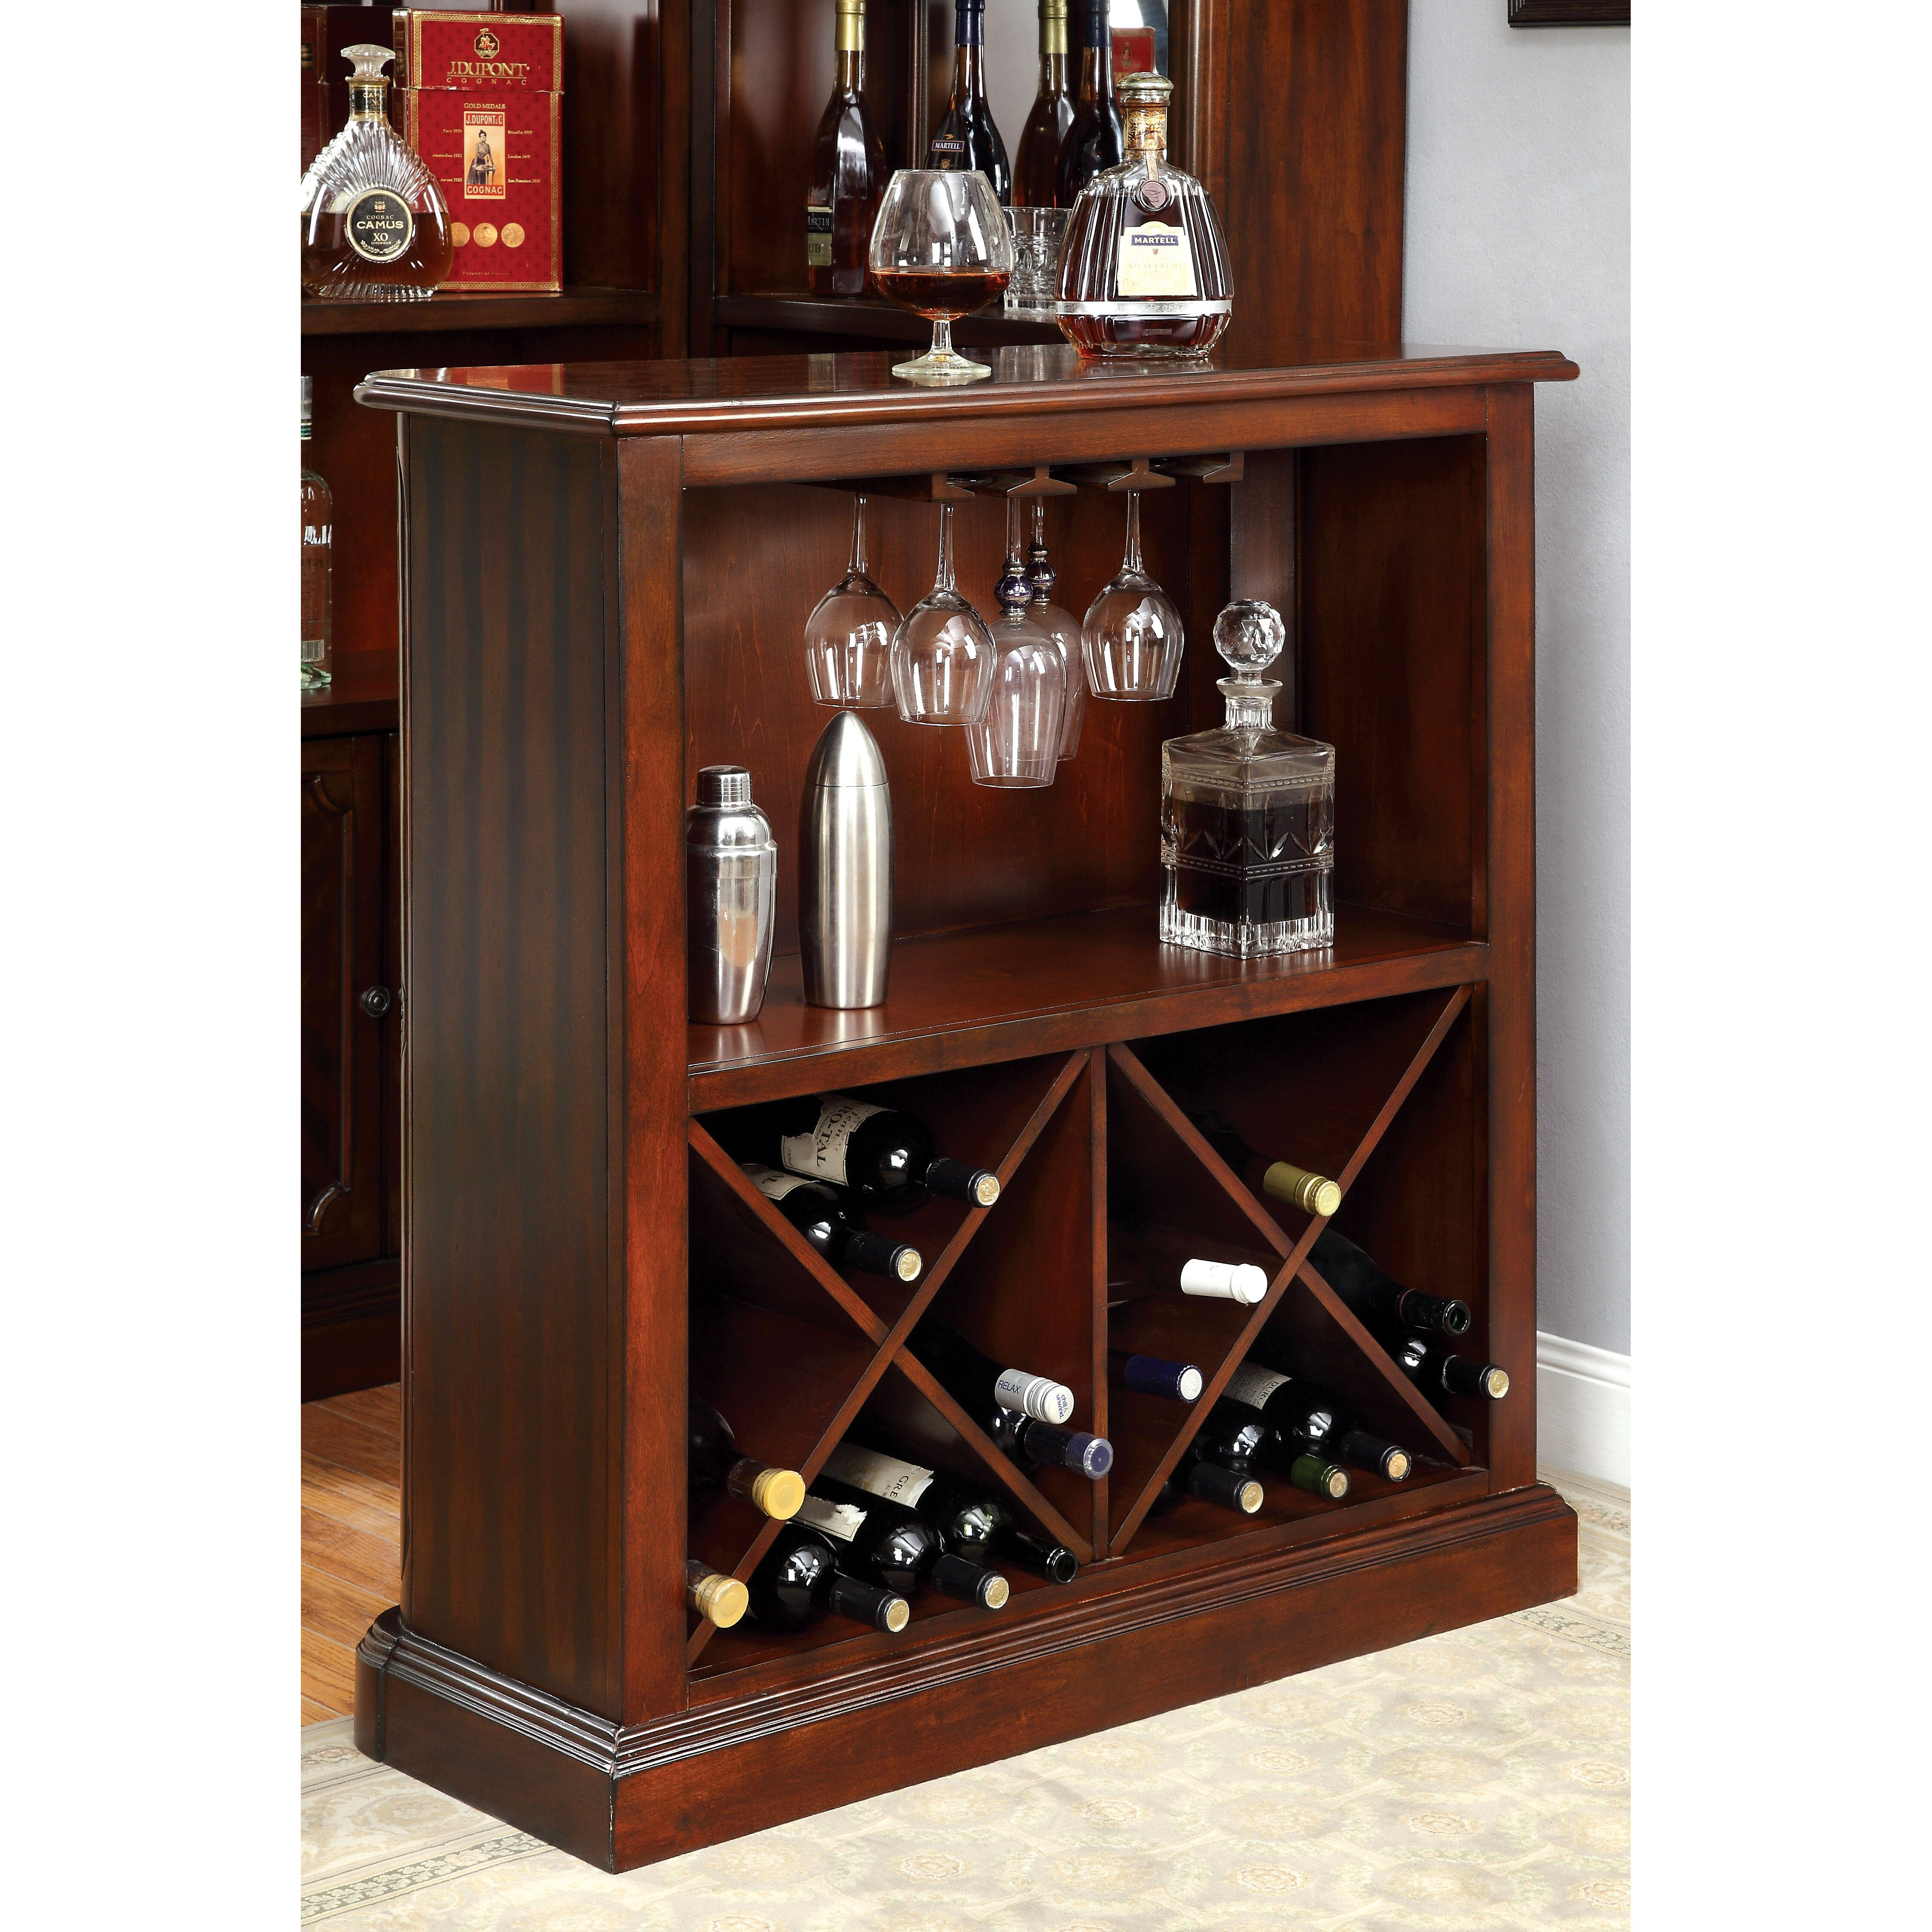 Hokku designs portafin bar with wine storage reviews for Furniture of america wolfgang home bar cabinet